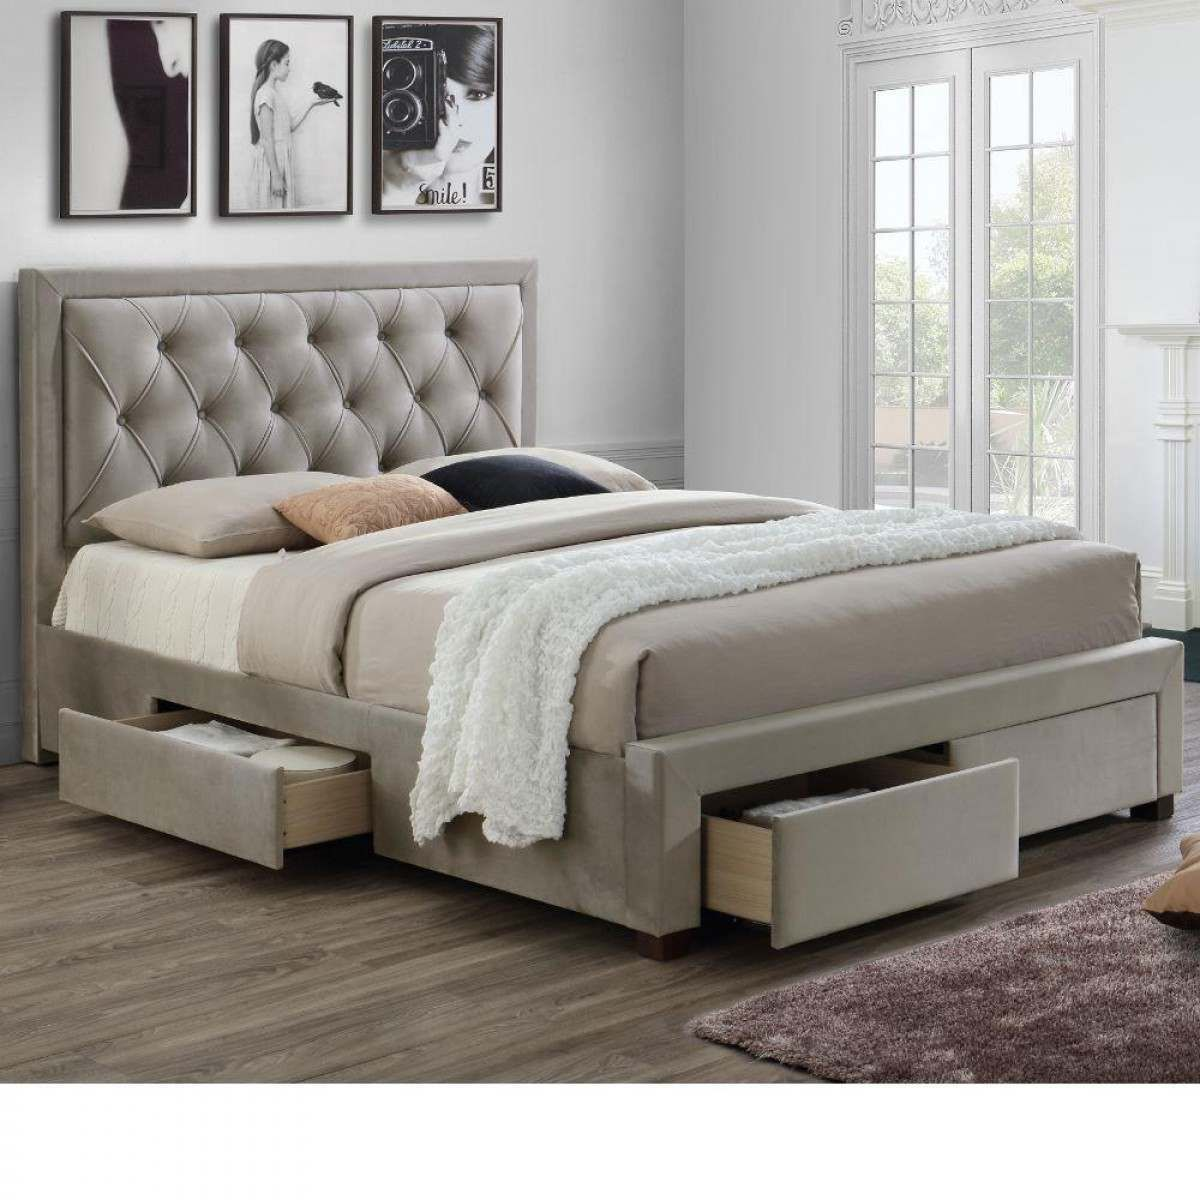 Woodbury Warm Stone Velvet Fabric 4 Drawer Storage Bed